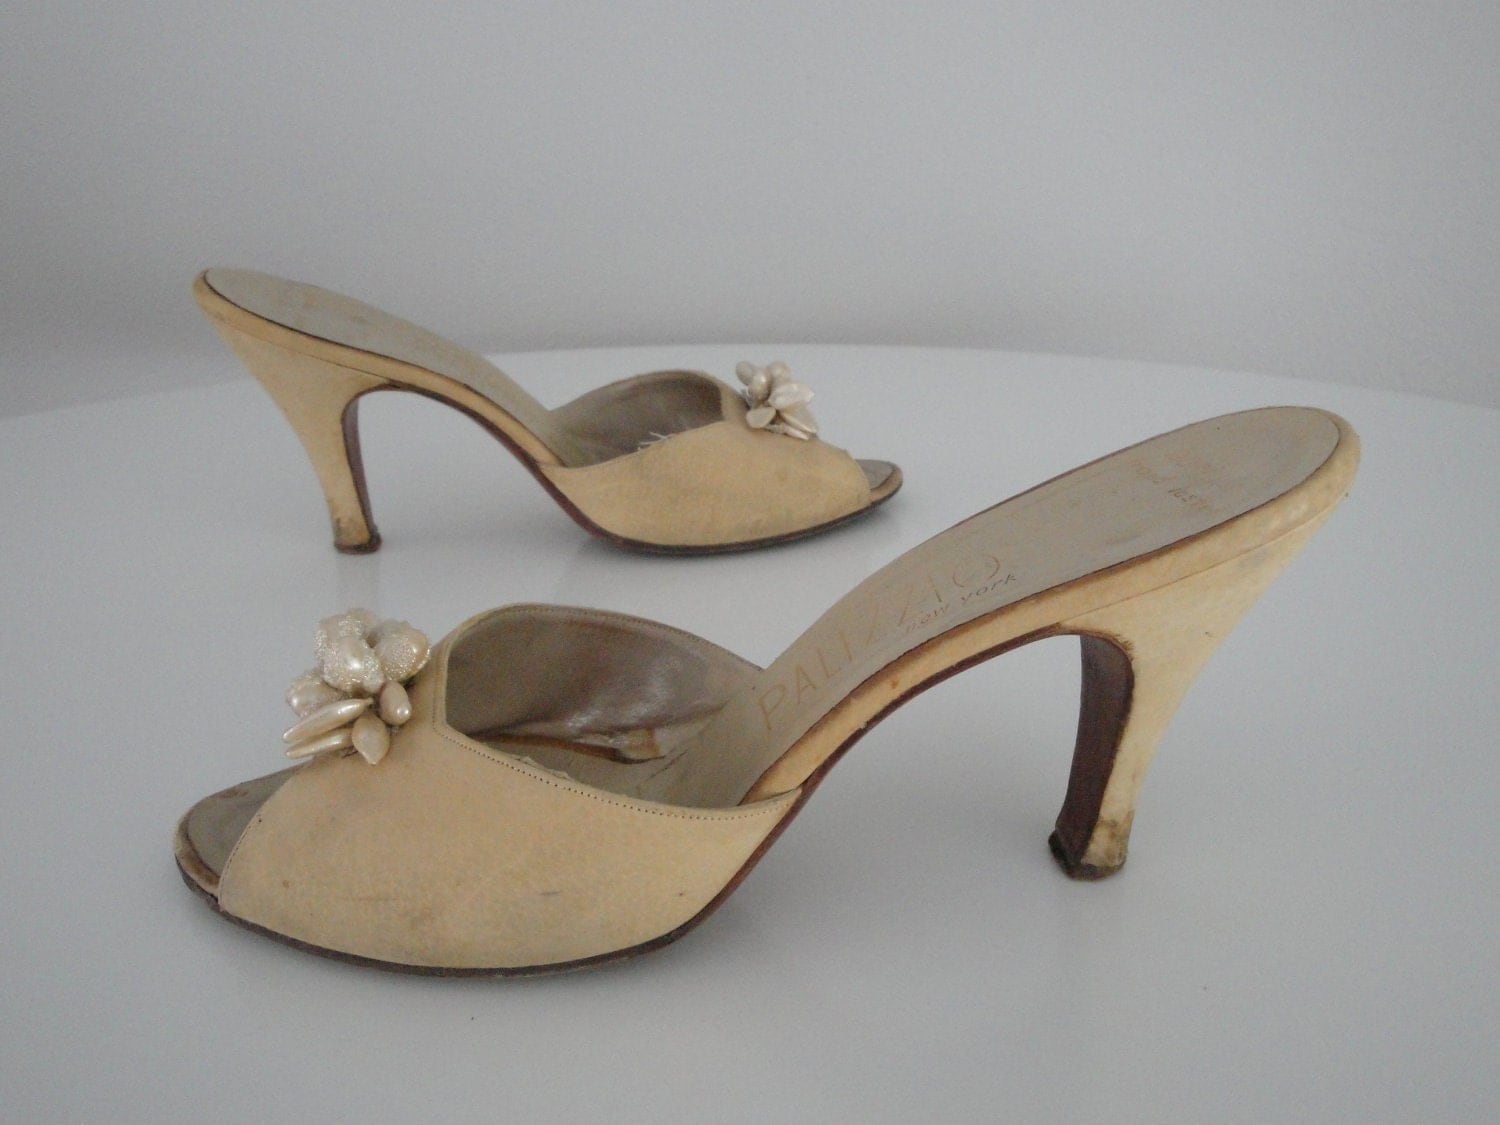 Vintage 1950s 50s Shoes Mules Slide Sandals By ...